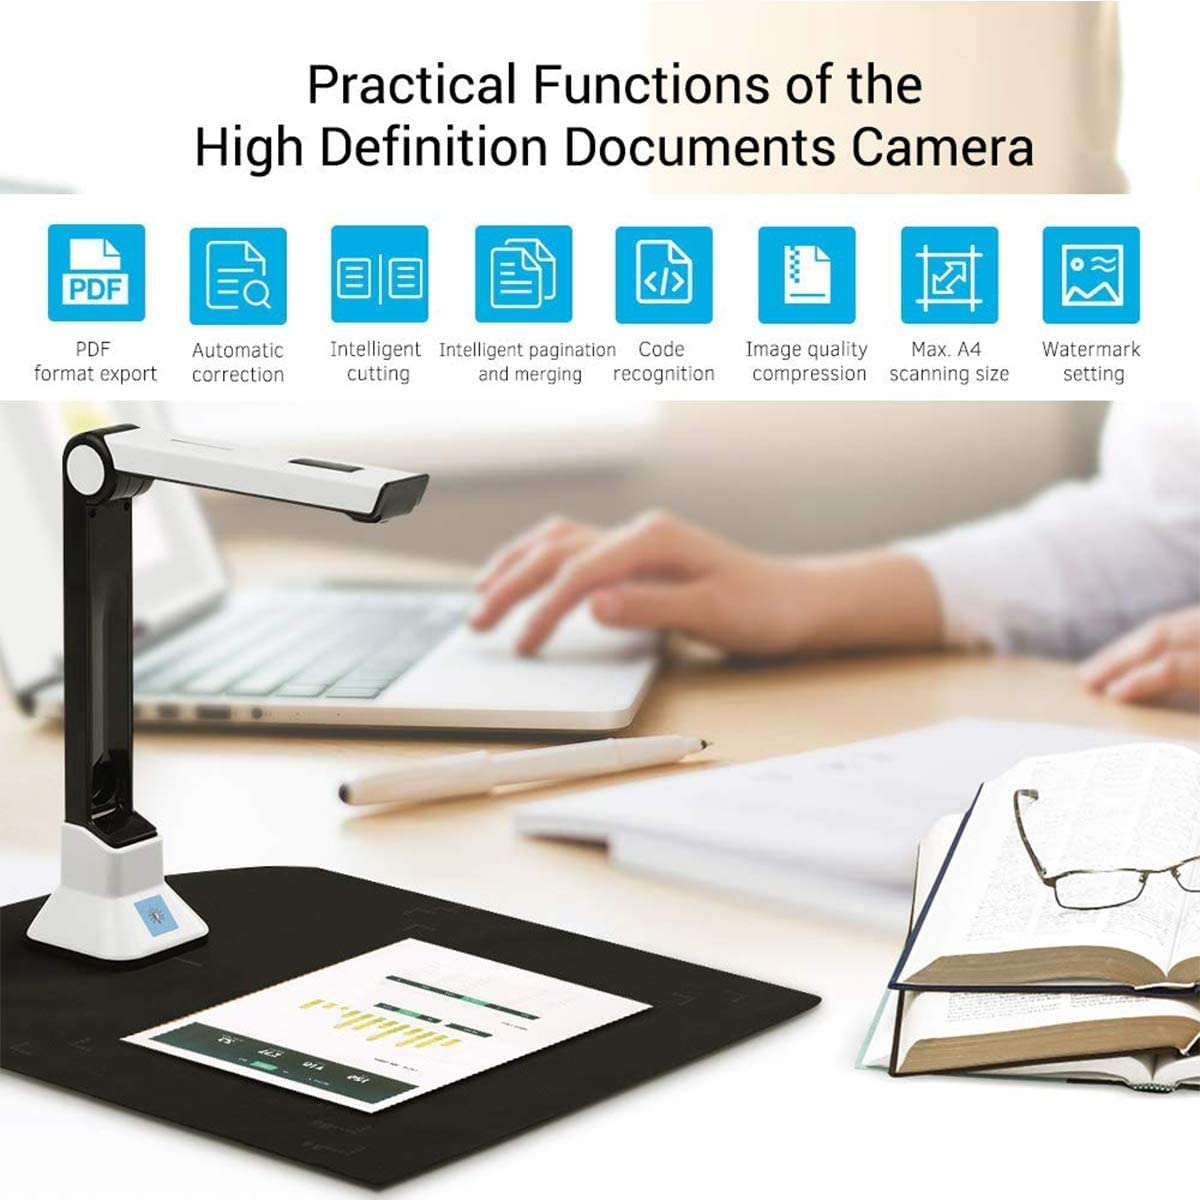 Ultra High Definition USB Portable A4 Scanner Office Classrooms with Real-time Projection Video Recording Versatility A4 Format OCR Multi-Language Recognition,etc Document Camera